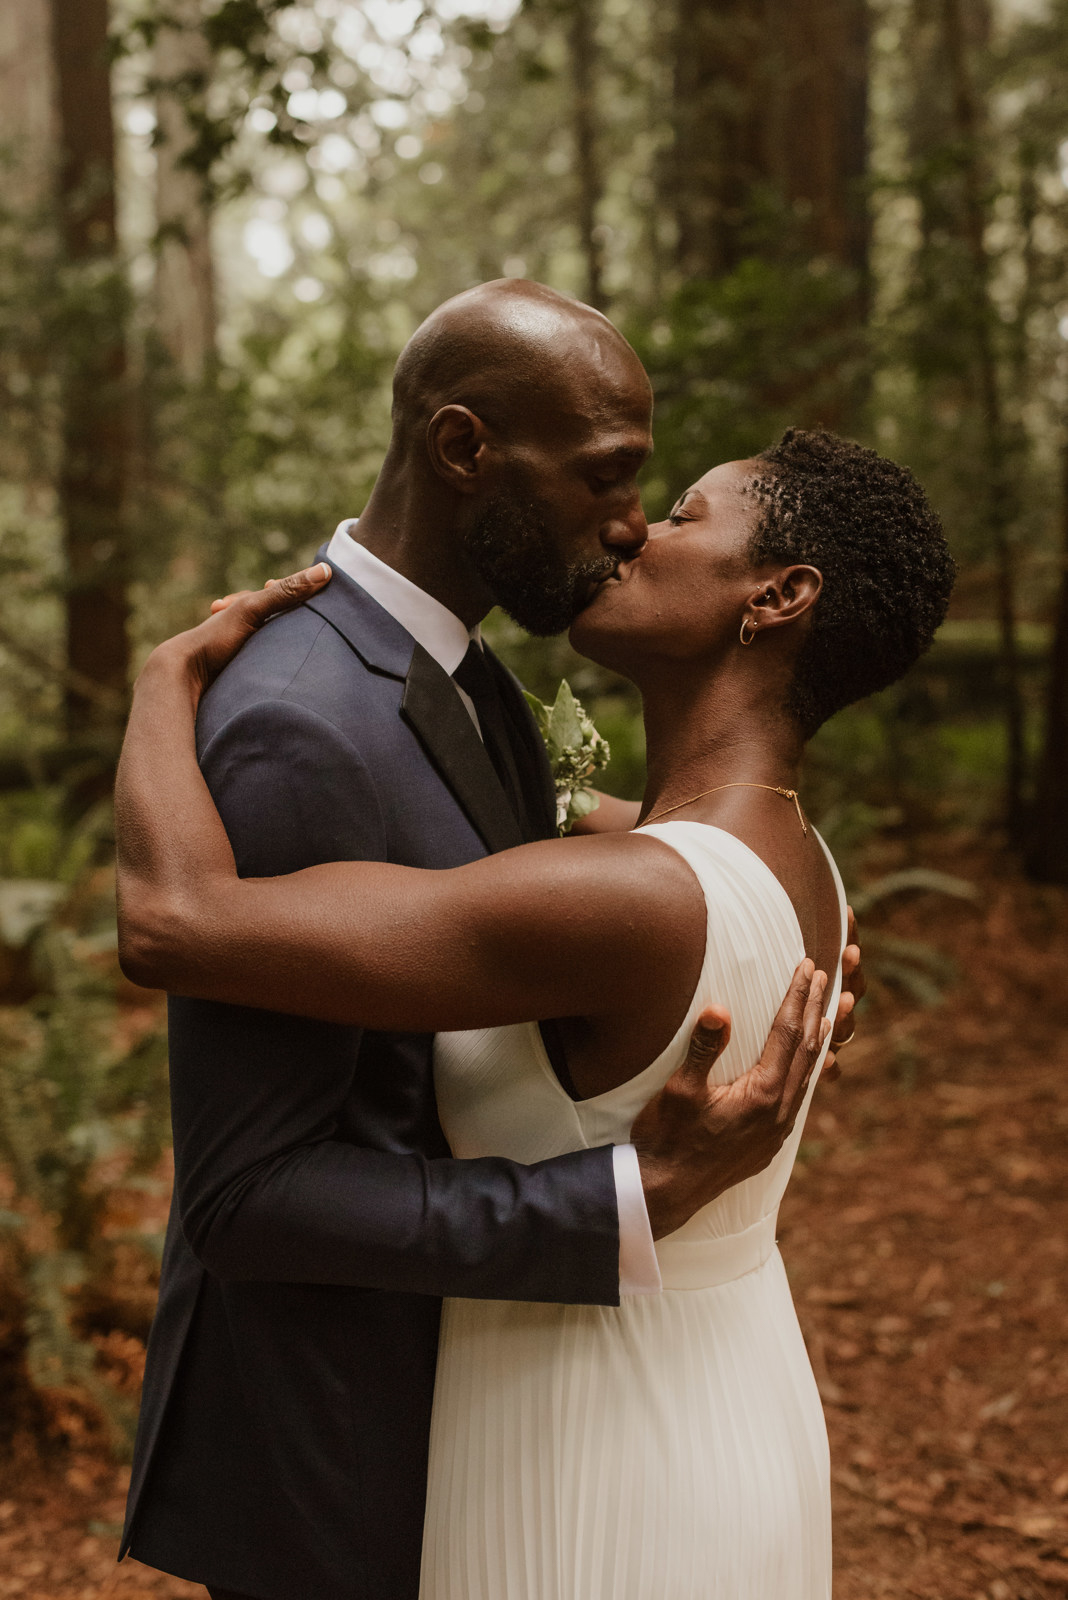 couple kissing in forest for wedding portrait